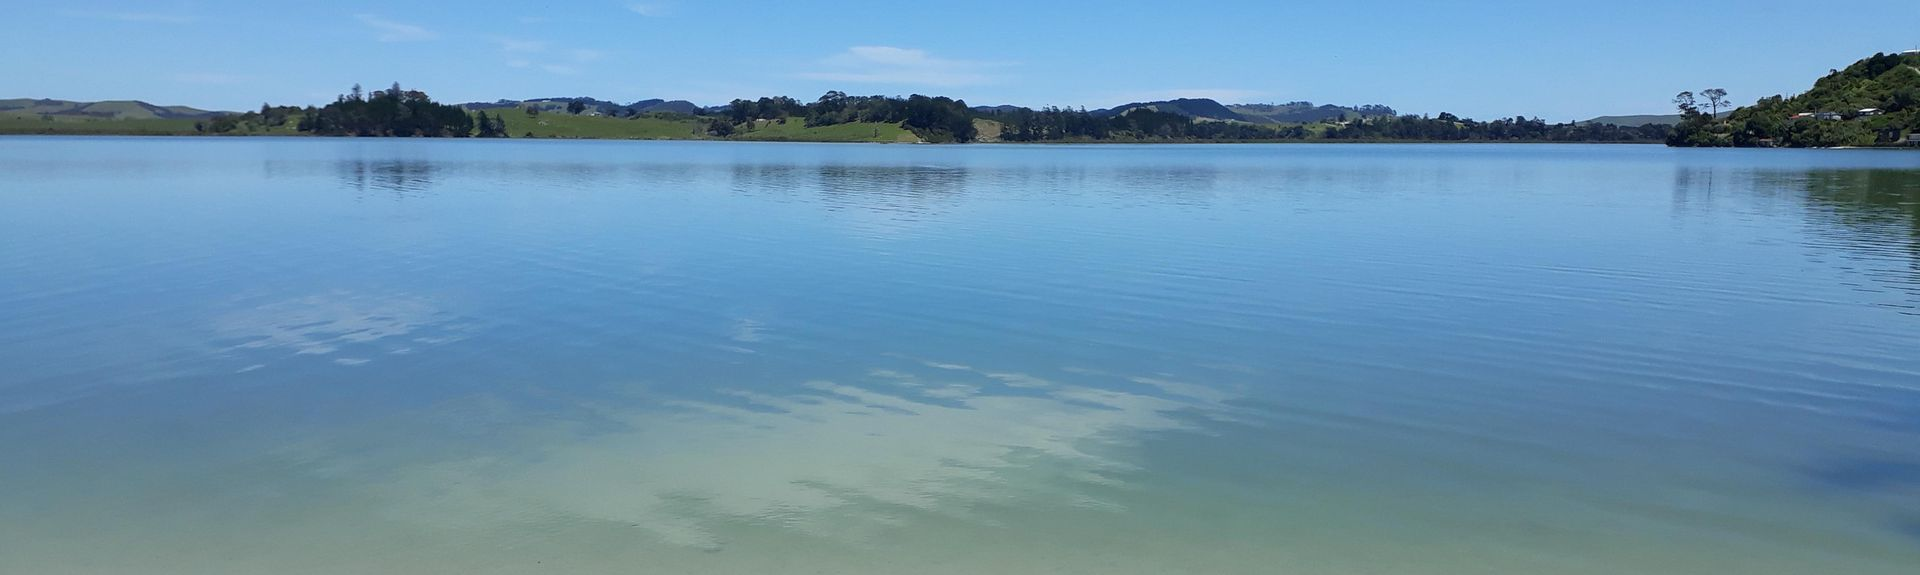 Maungaturoto, Kaipara, Northland, New Zealand